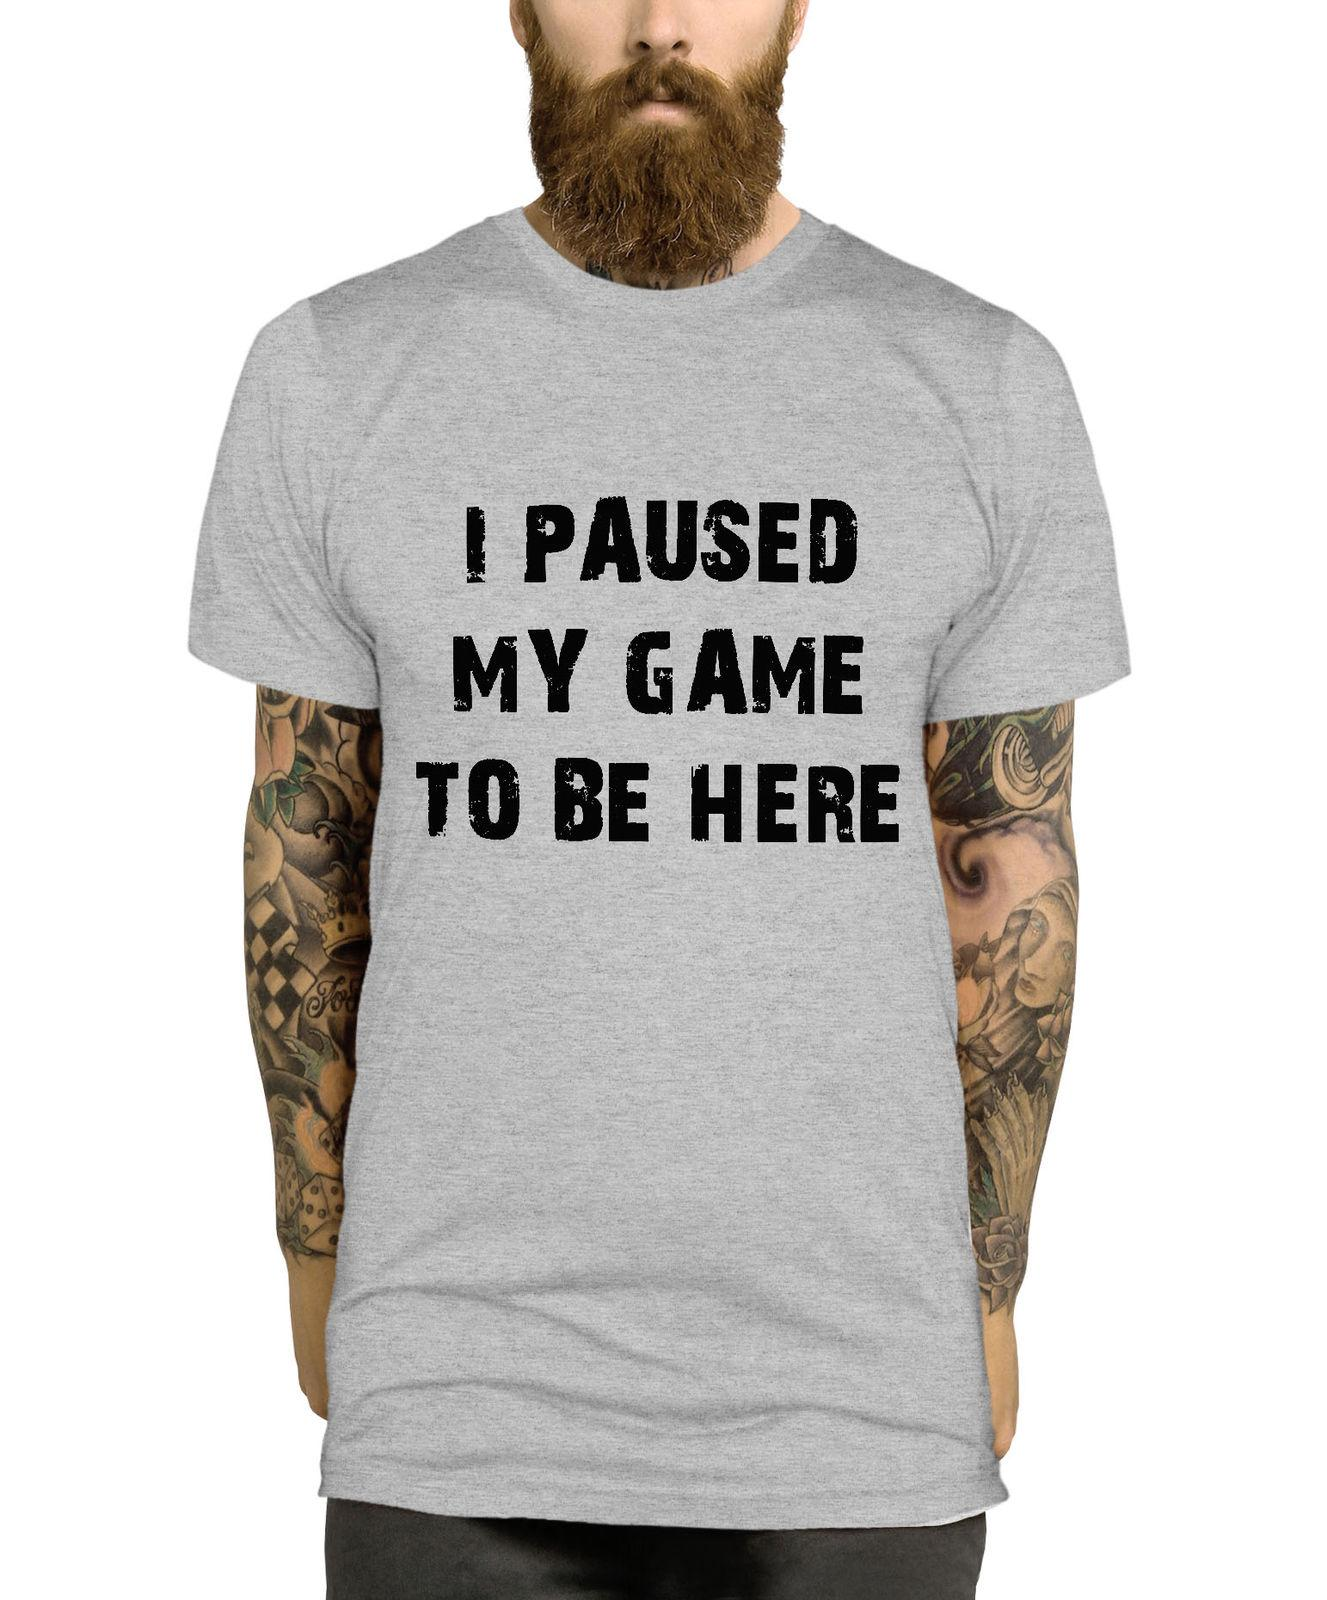 f6ea8b69 I Paused My Game To Be Here T Shirt Funny Gaming Gamer Top Men Gift Child  L320Funny Unisex Casual Gift Funny Political T Shirts Tee Designs From ...